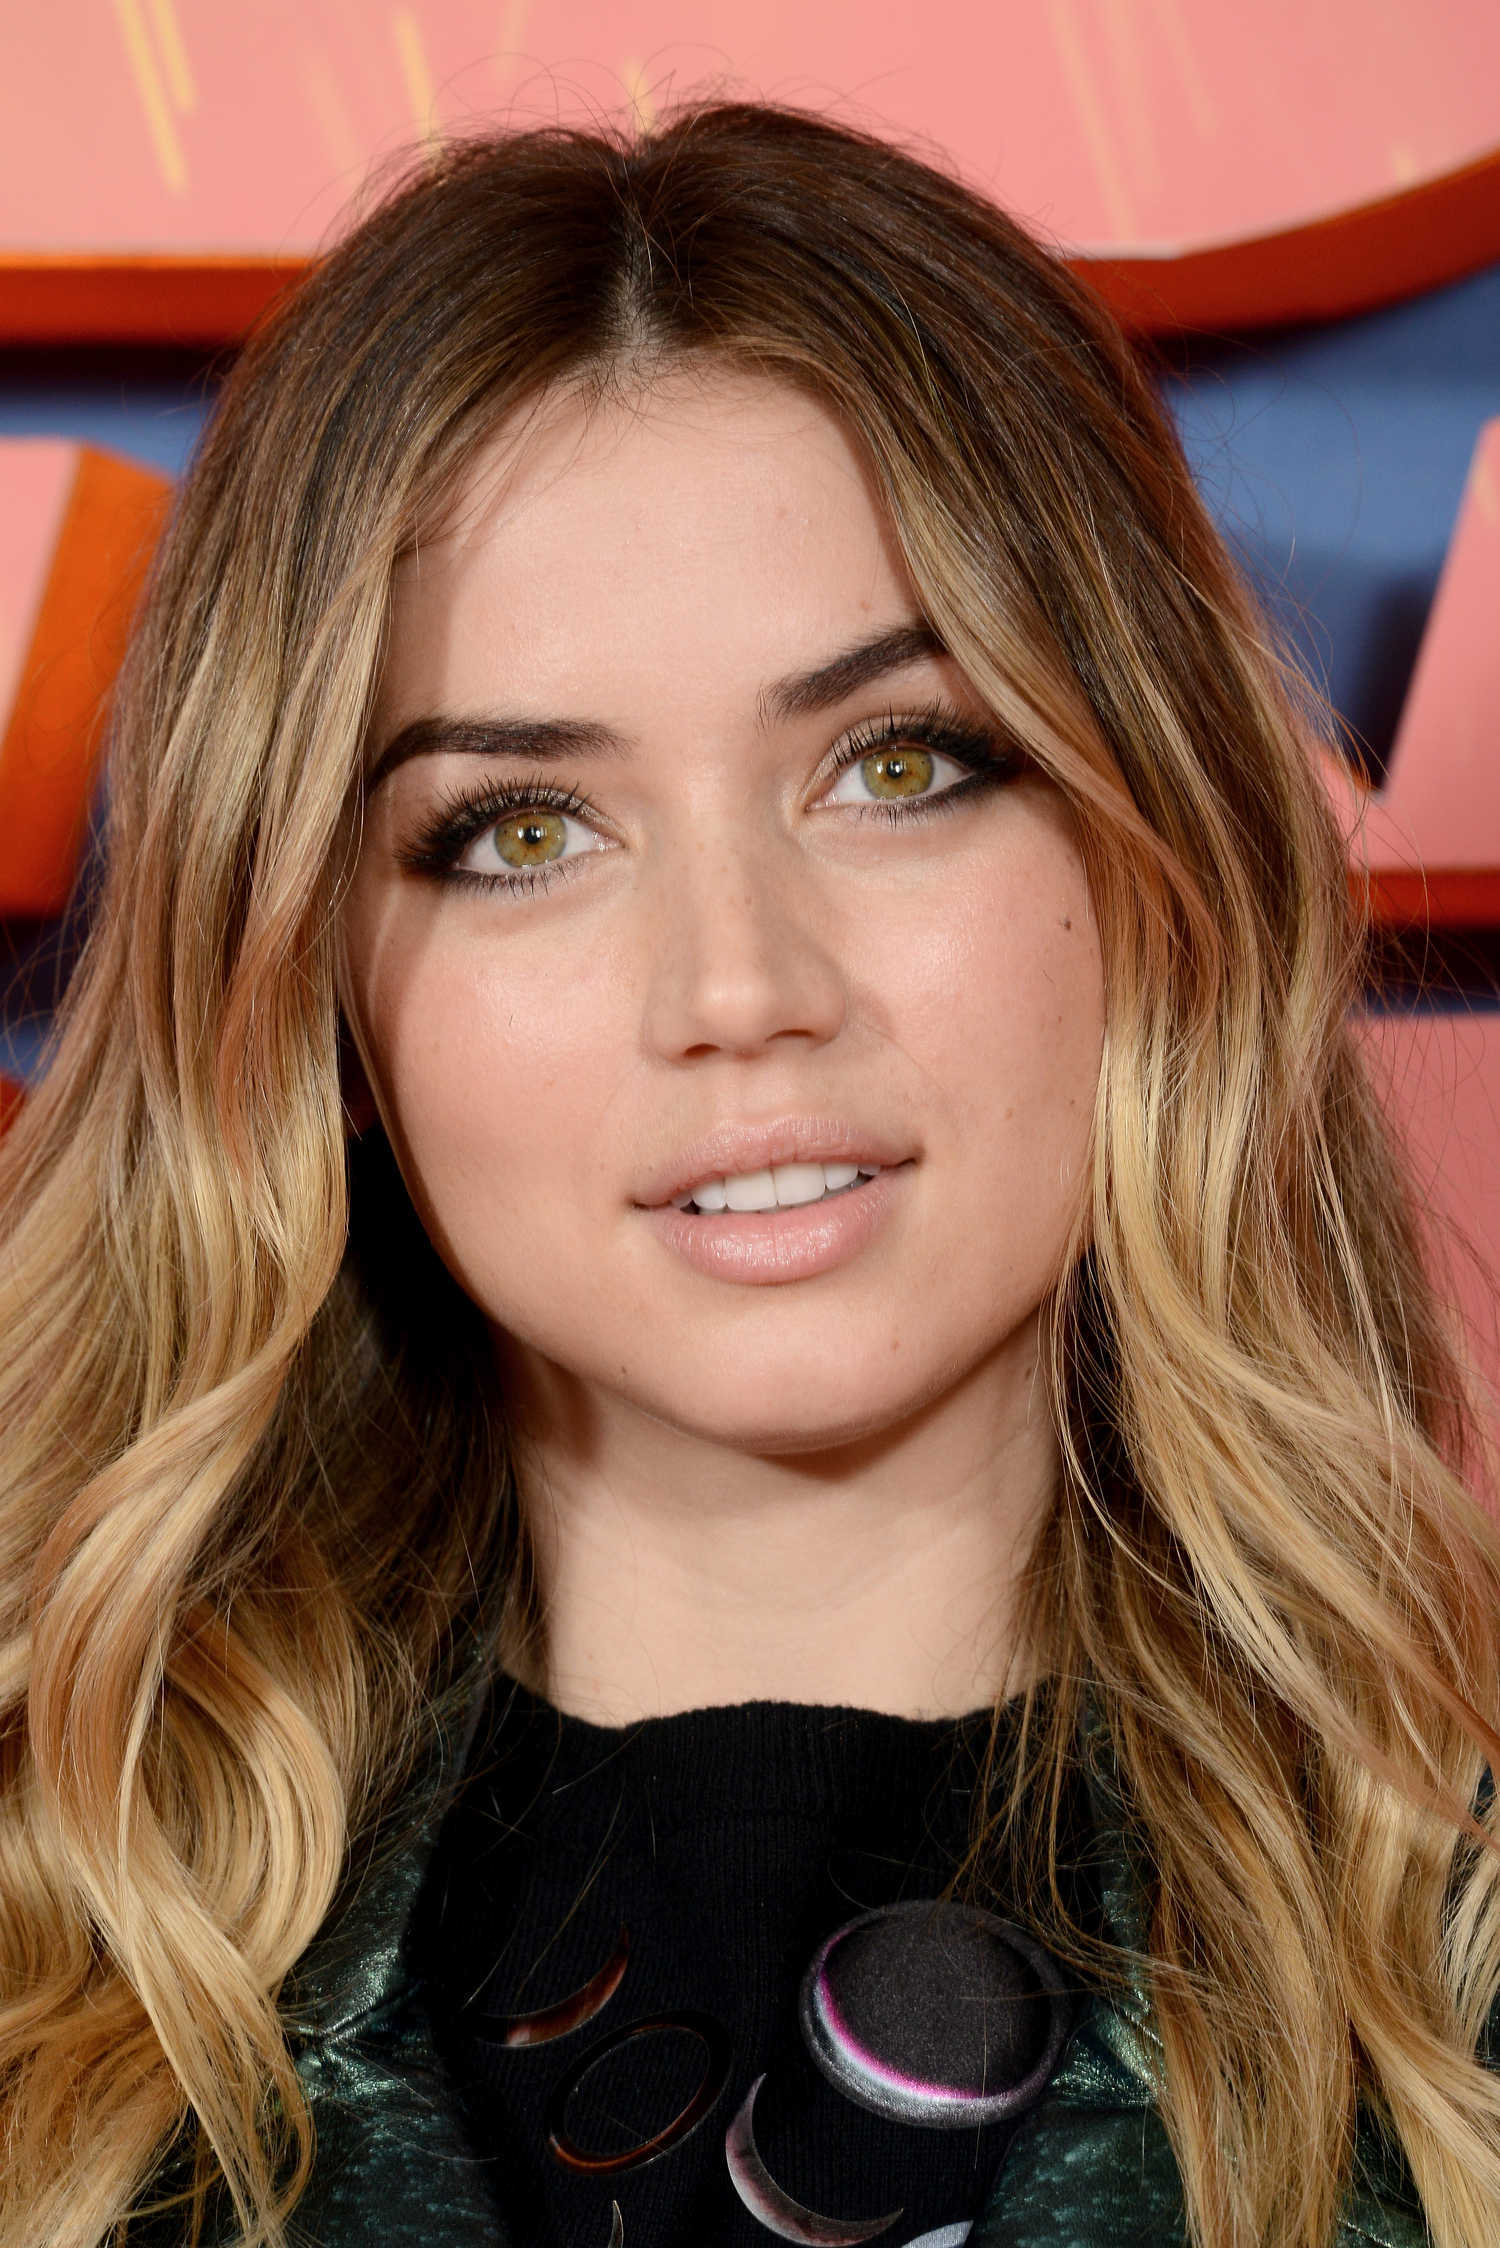 Ana de Armas at the Blade Runner 2049 Photocall in London ...